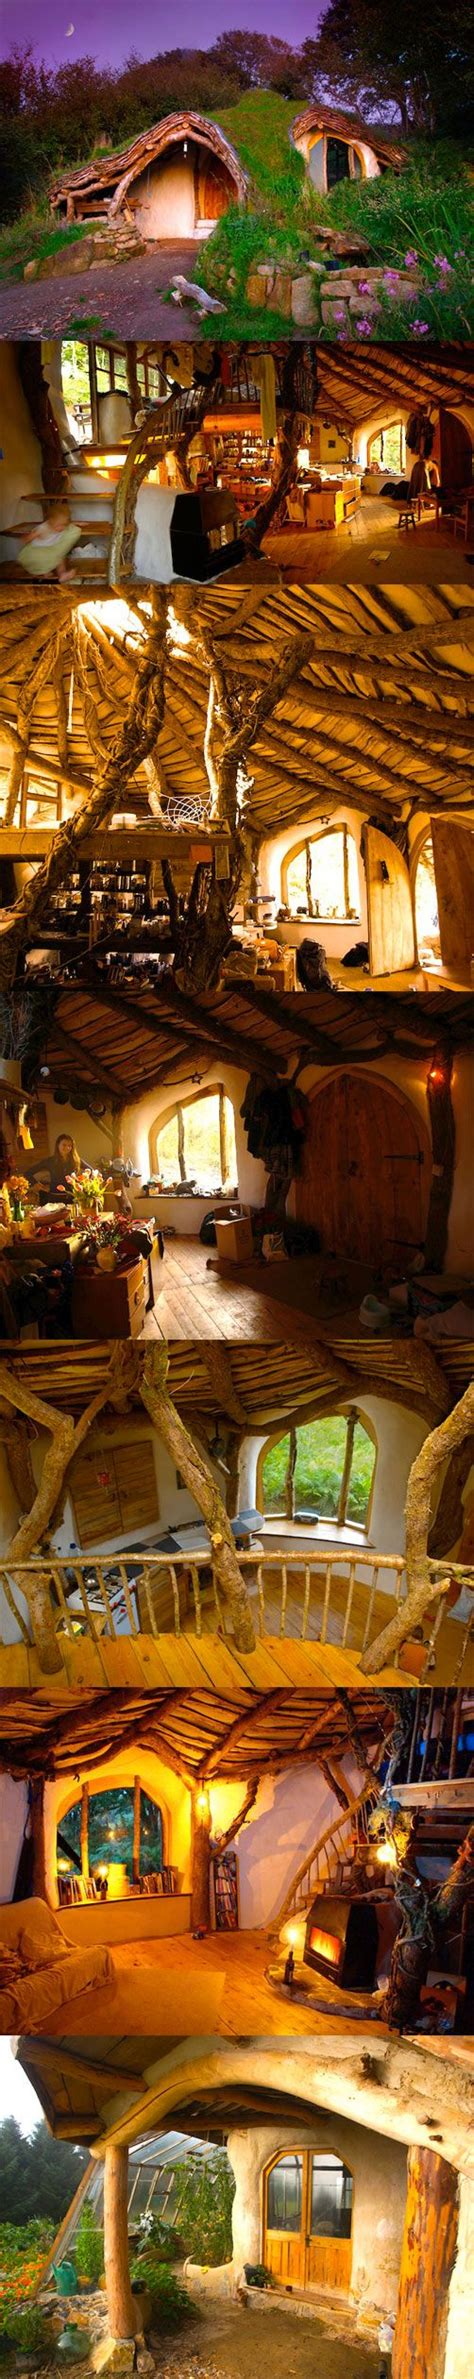 hobbit style homes i nice hobbit style home complete with sod roof and